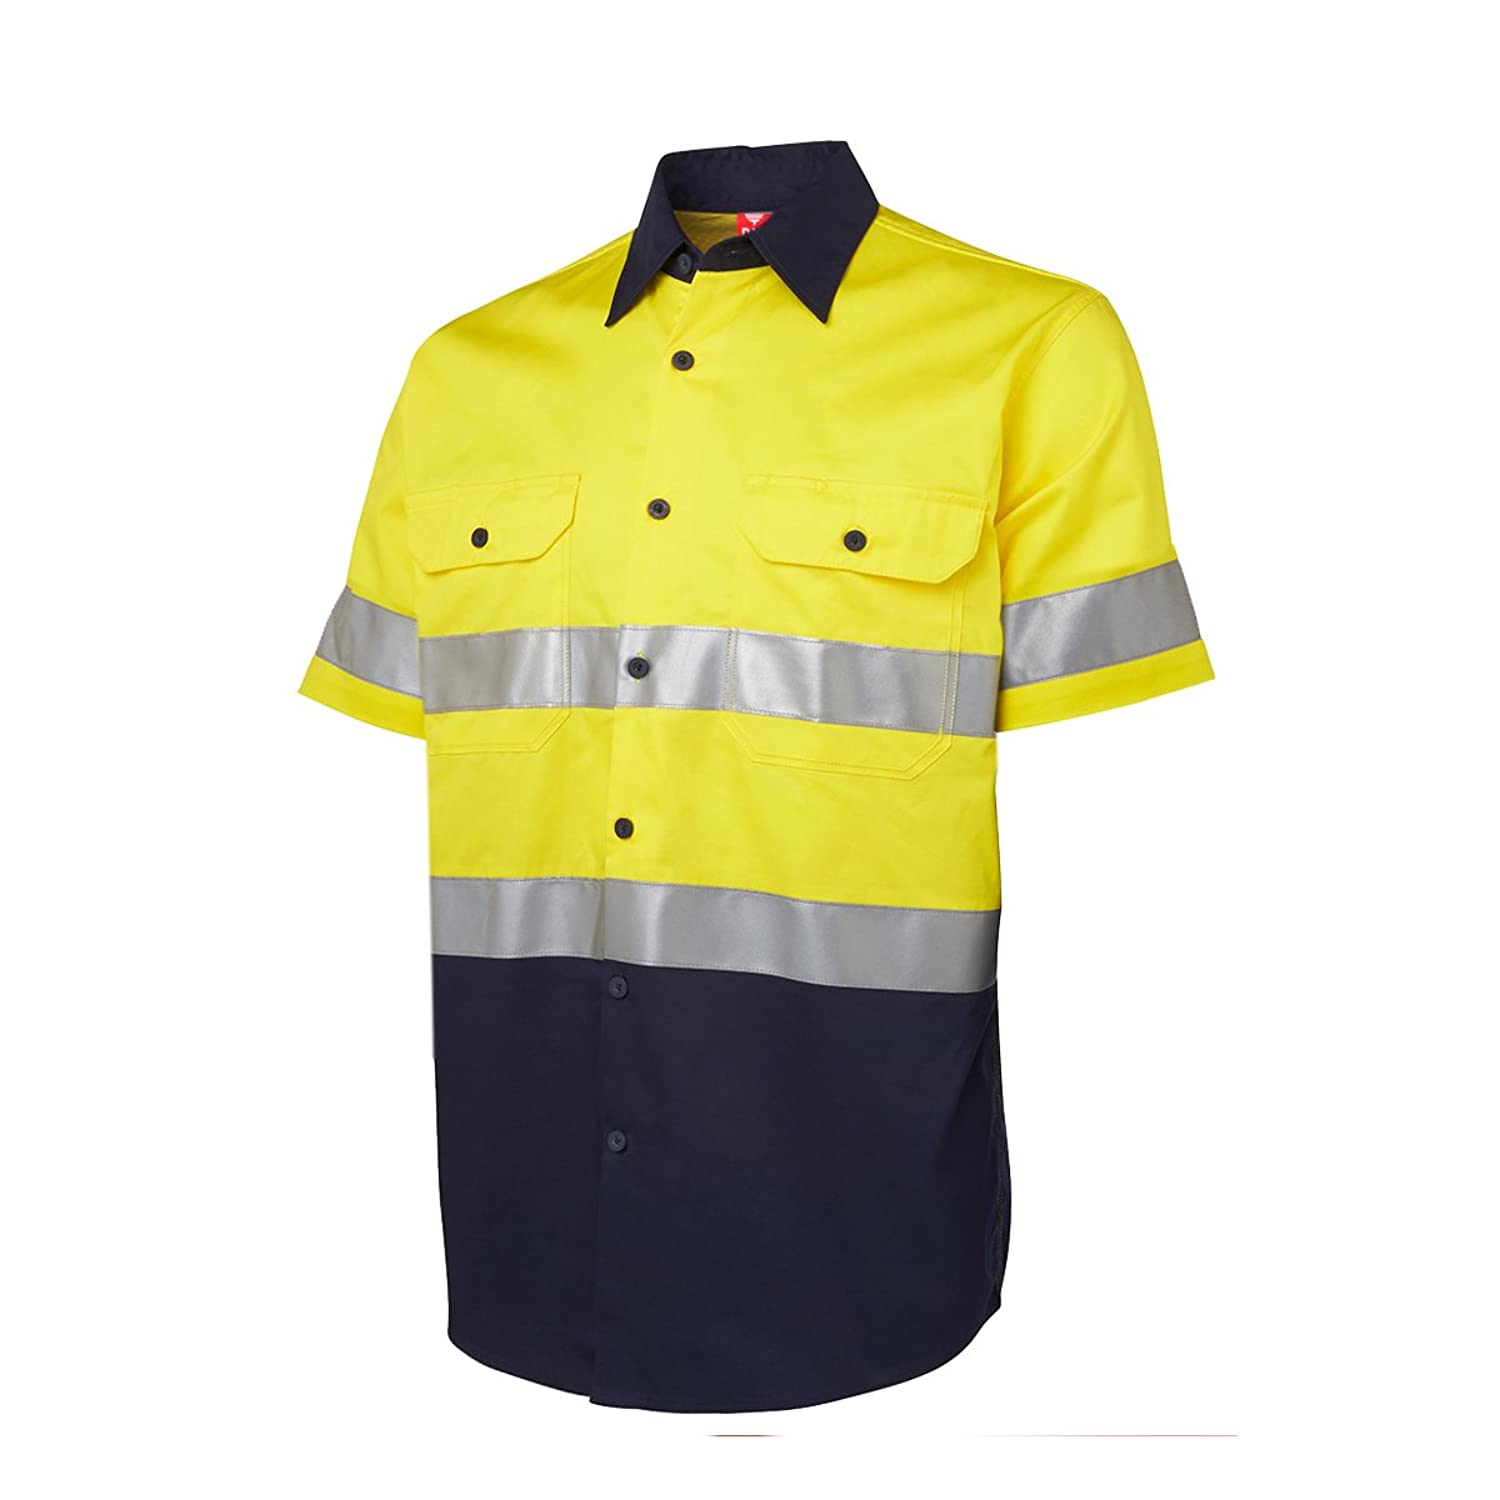 f3fa071ea8fded Top1  BIG BEE Men s Hi Vis Safety Shirt Plus Double Hooped 3M Reflective  Tape